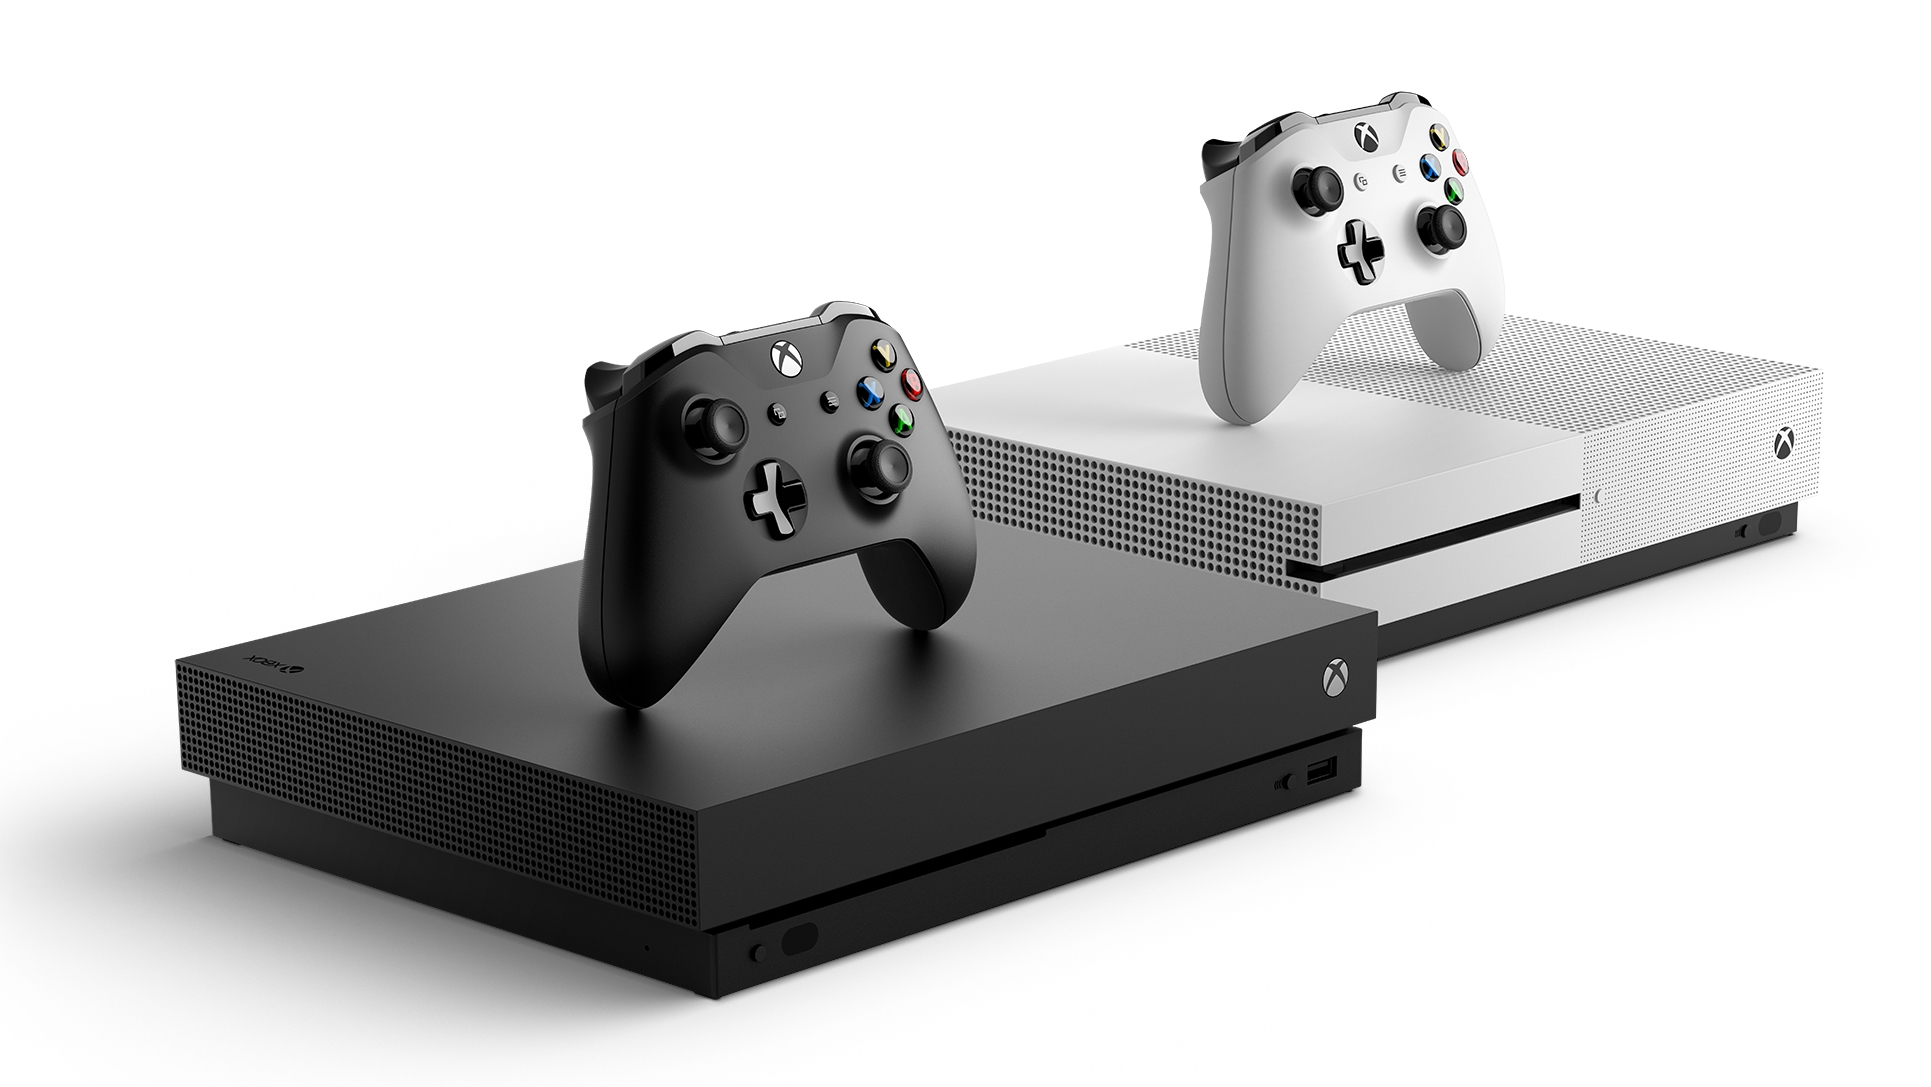 The Best Cyber Monday Xbox One Deals Get Lowest Prices Of 2018 Elite 1tb Techradar